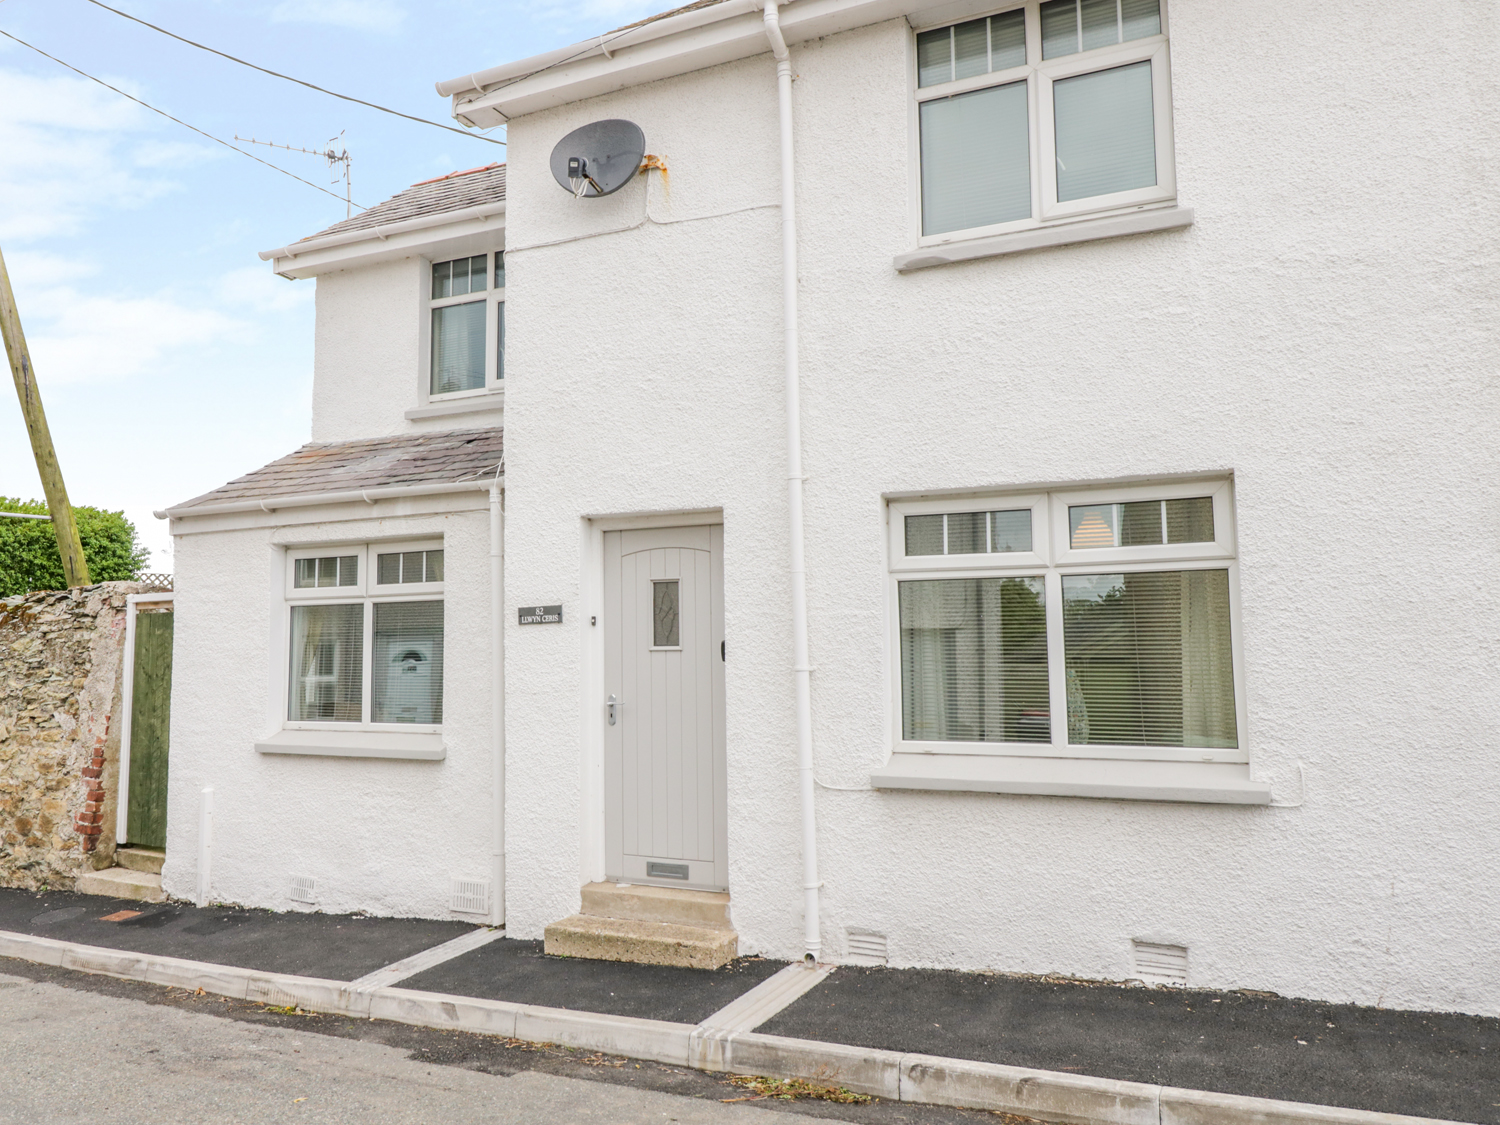 3 bedroom Cottage for rent in Amlwch